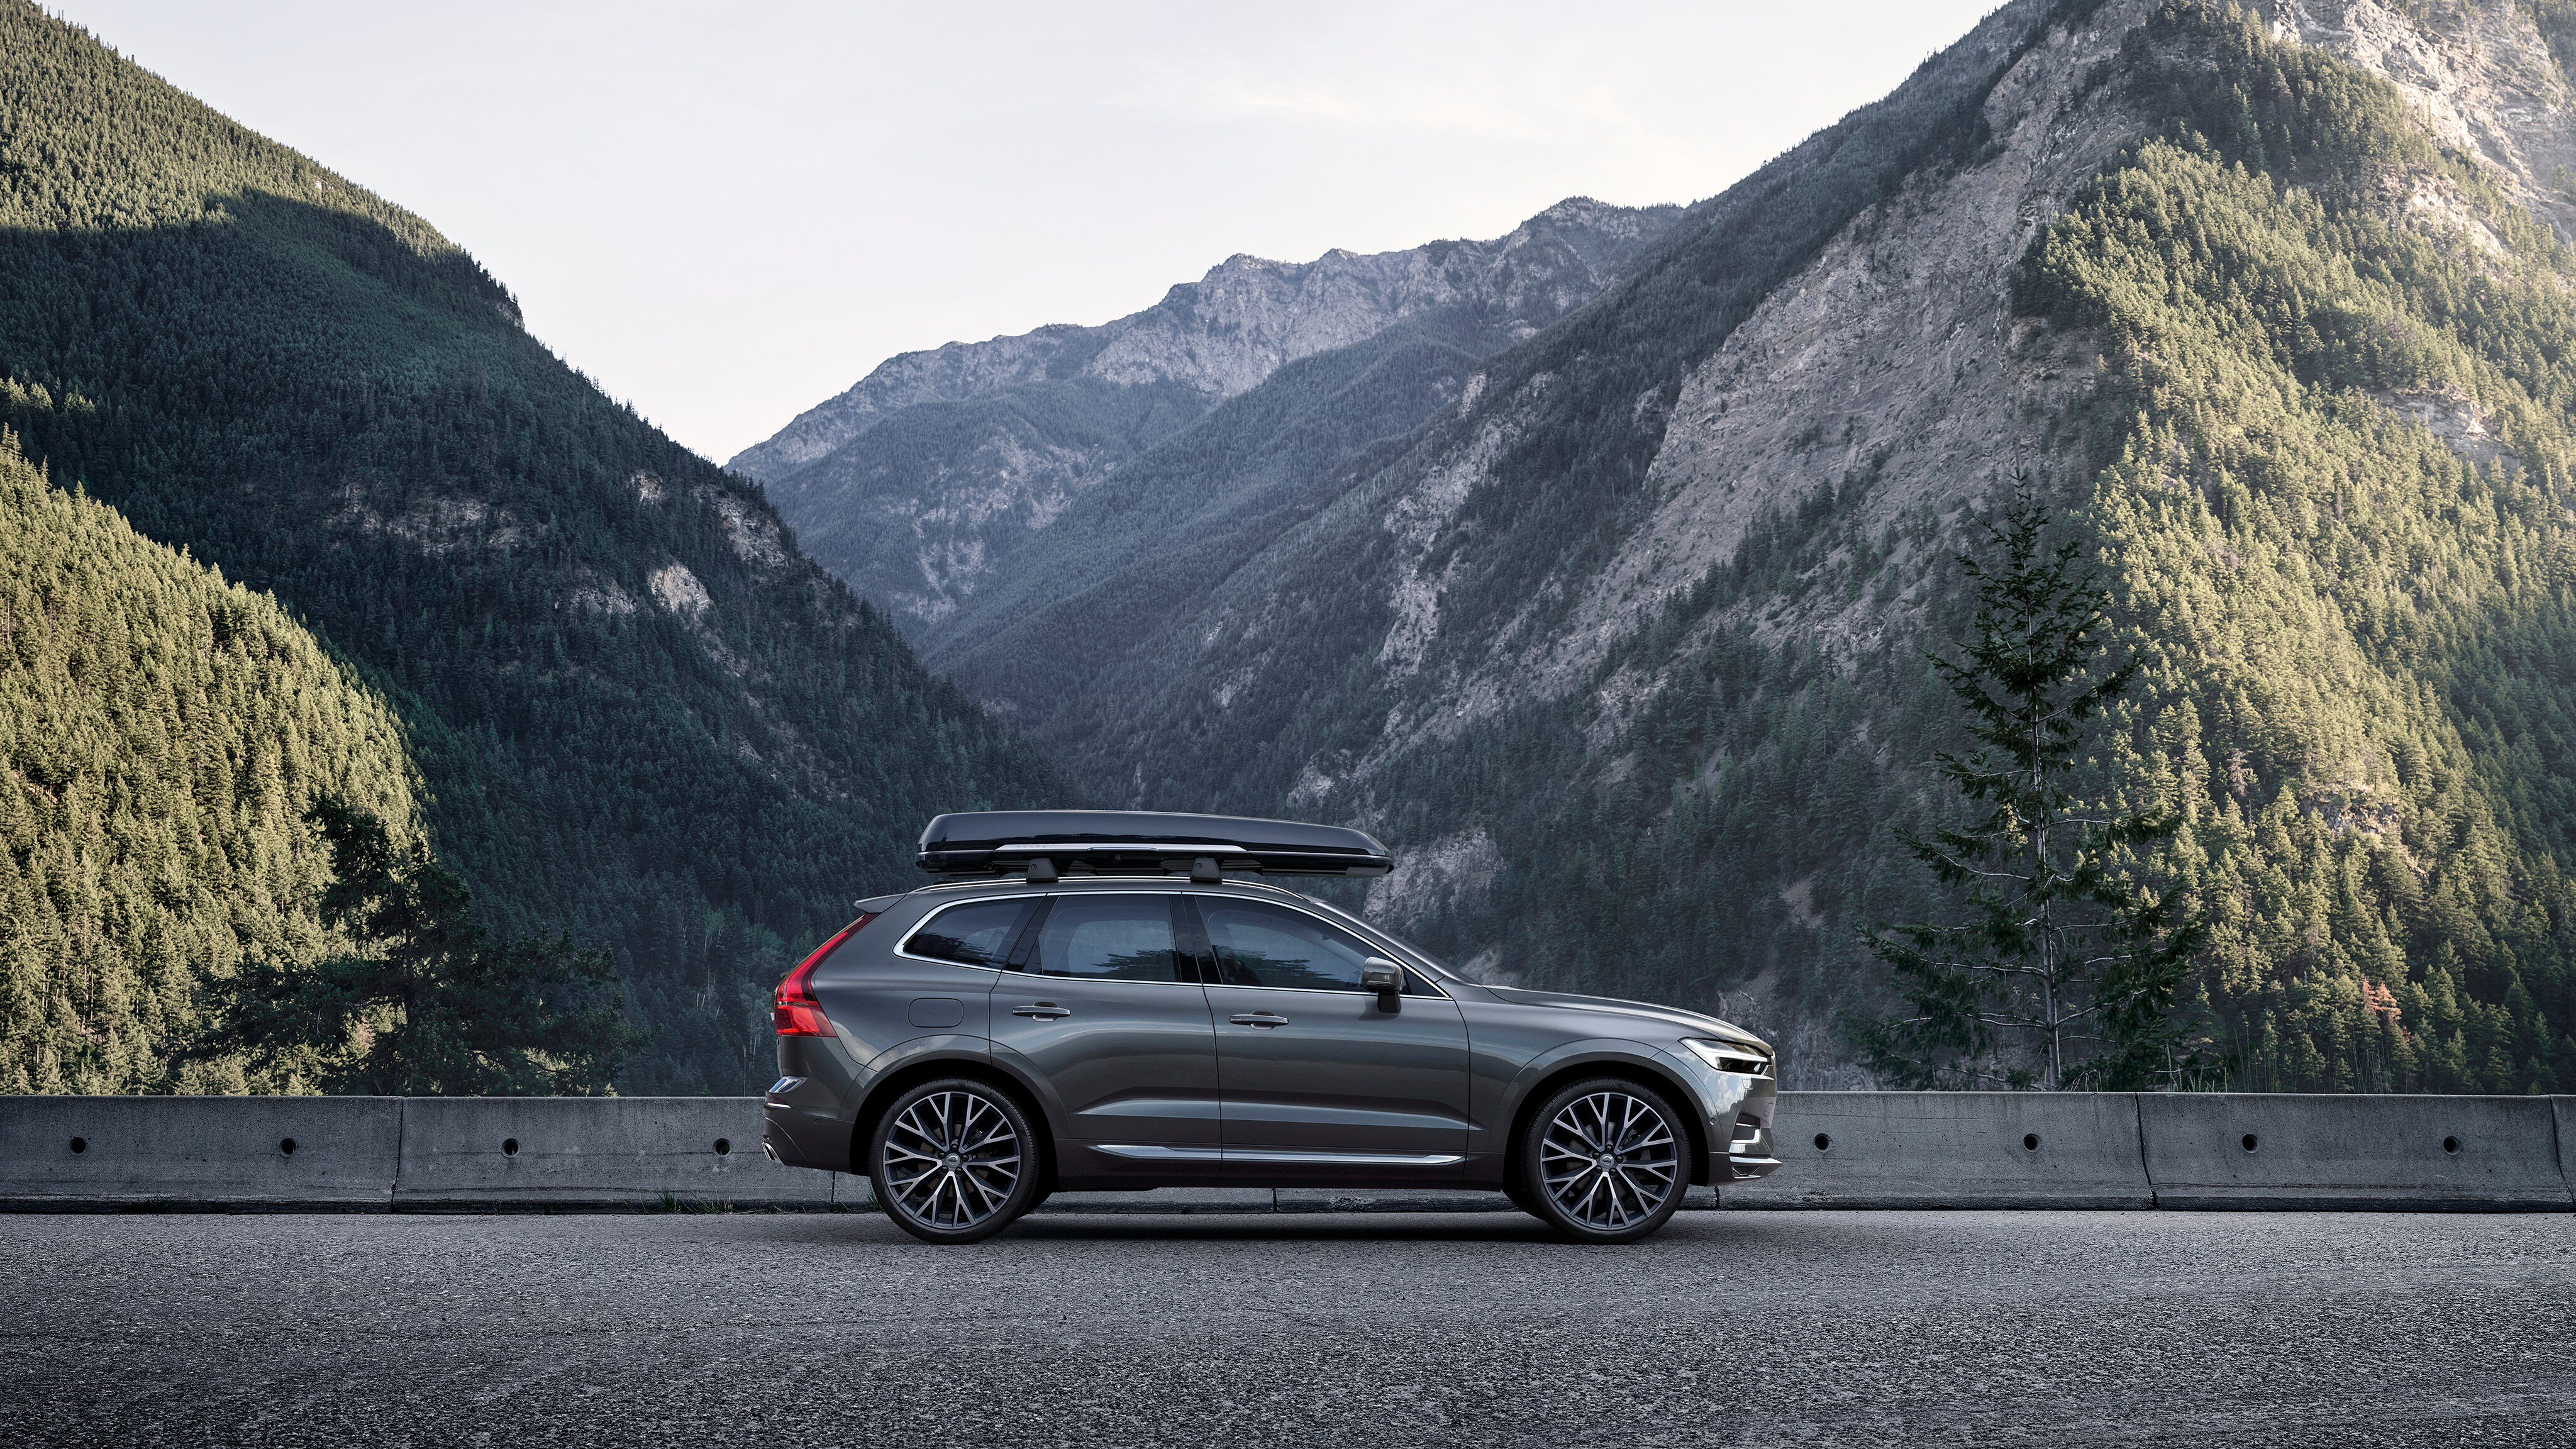 XC60 Accessories & Styling Options | Volvo Cars | Volvo Cars